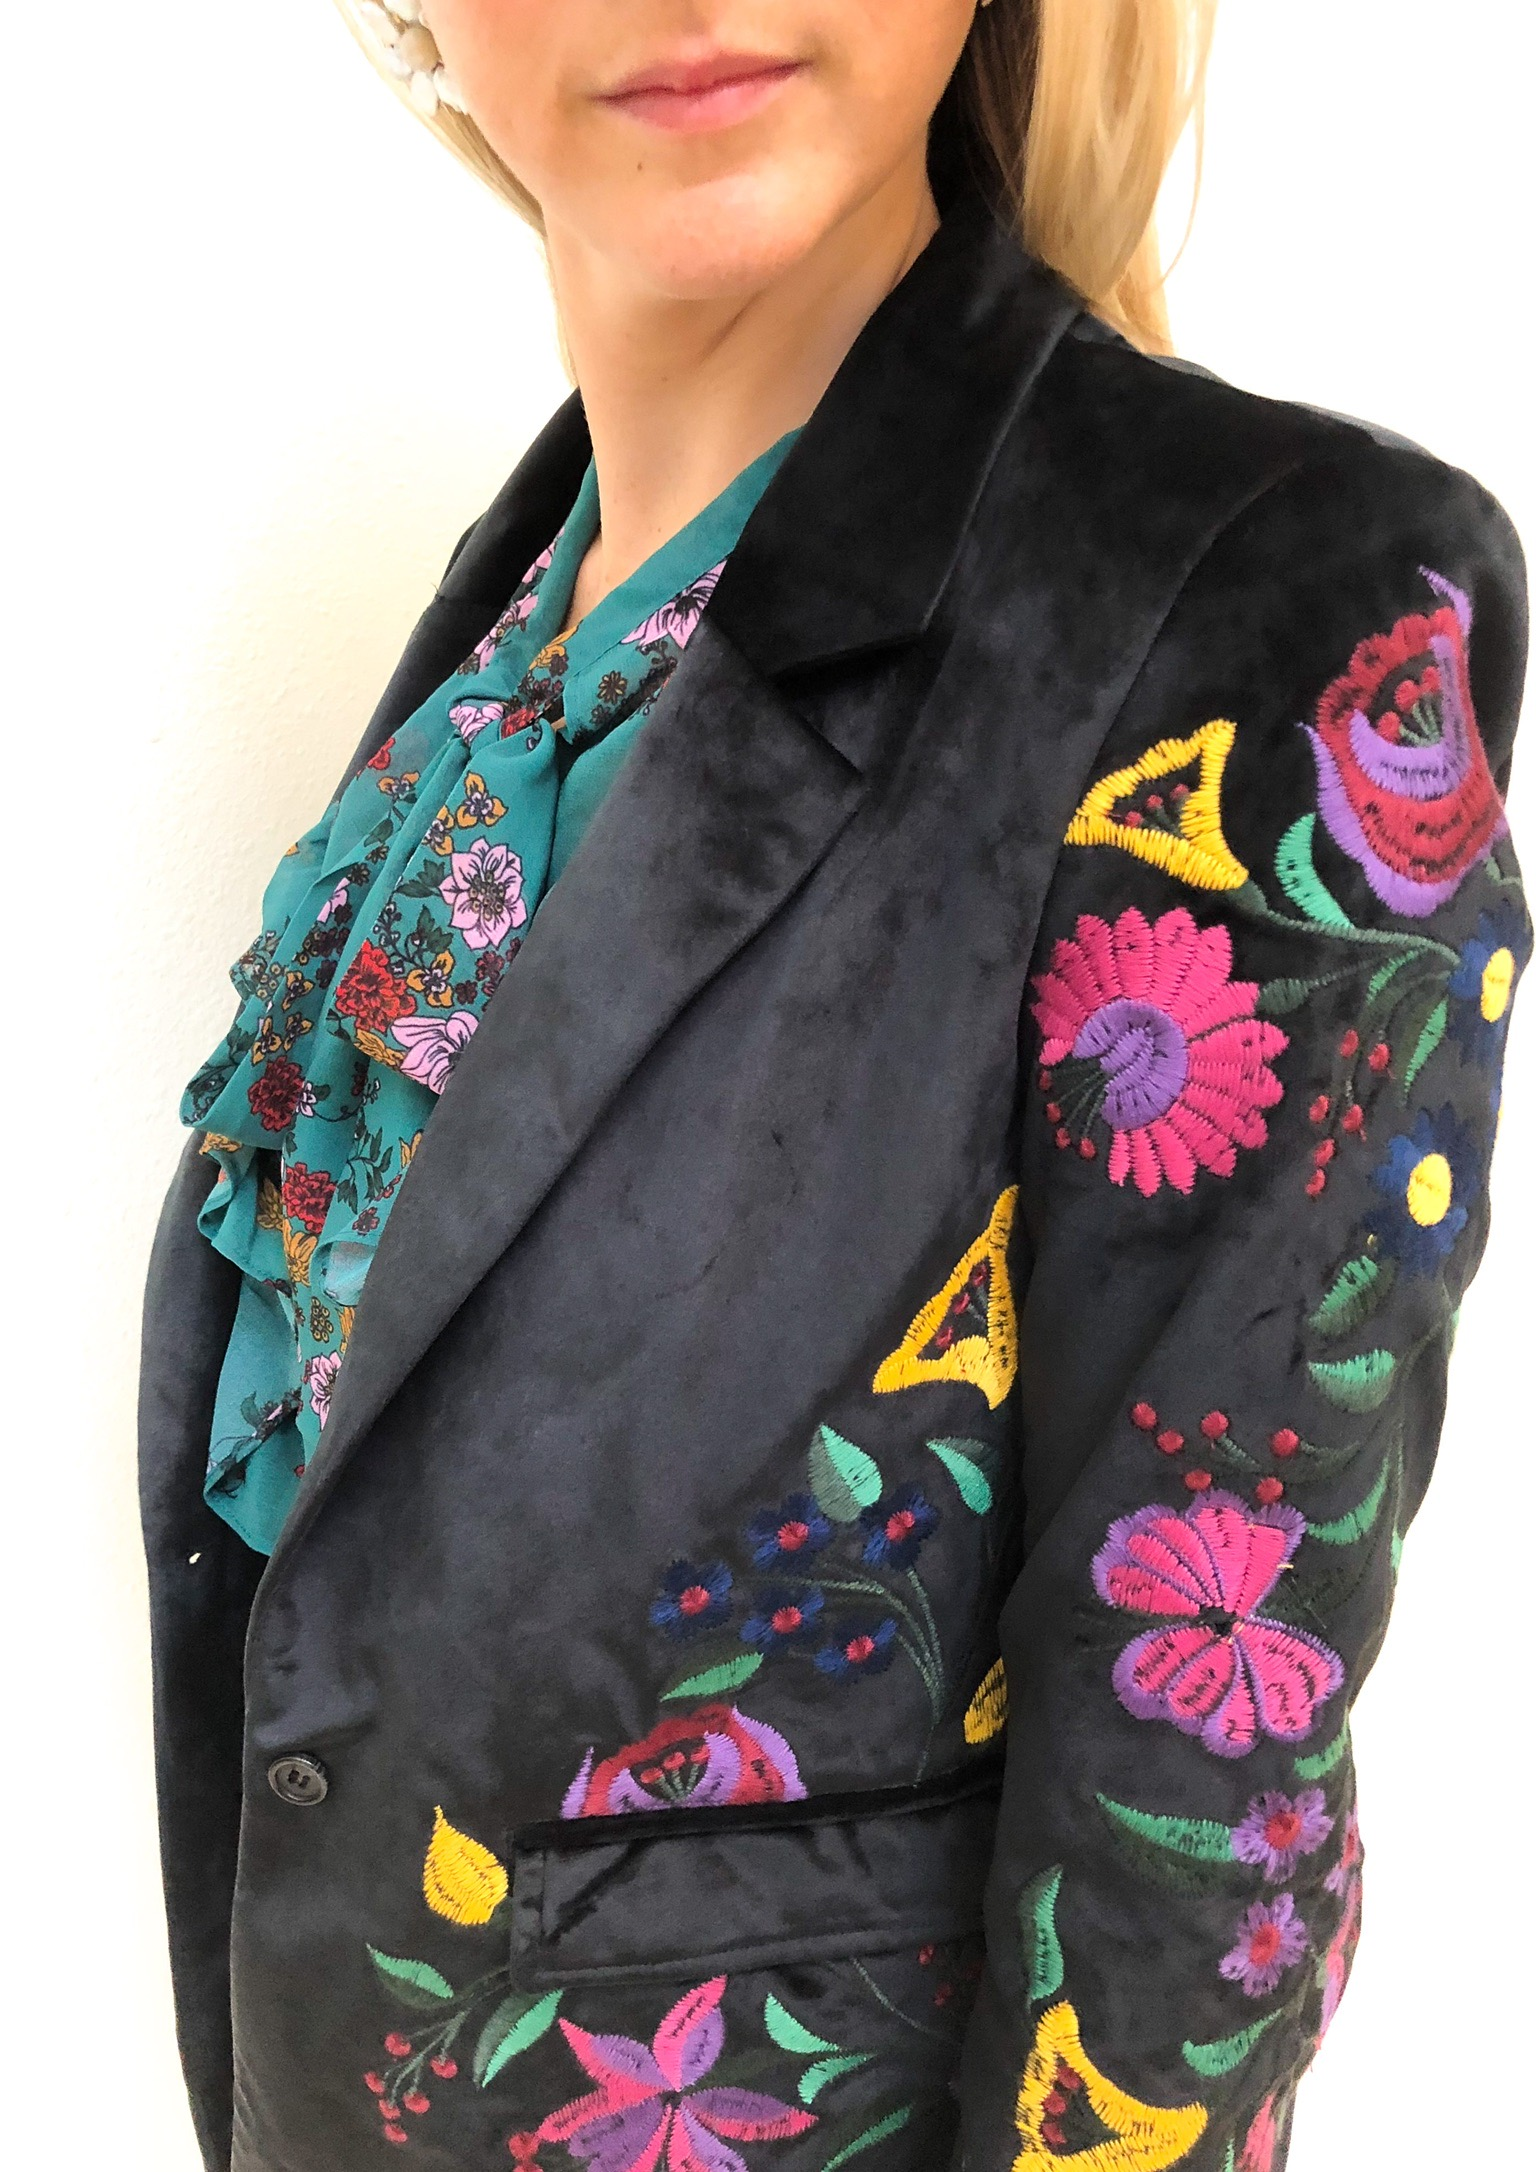 SecondLook: - Second Look: Plush velvets and furs are having a big moment this season. Add this embroidered blazer to your ensemble for unexpected texture.